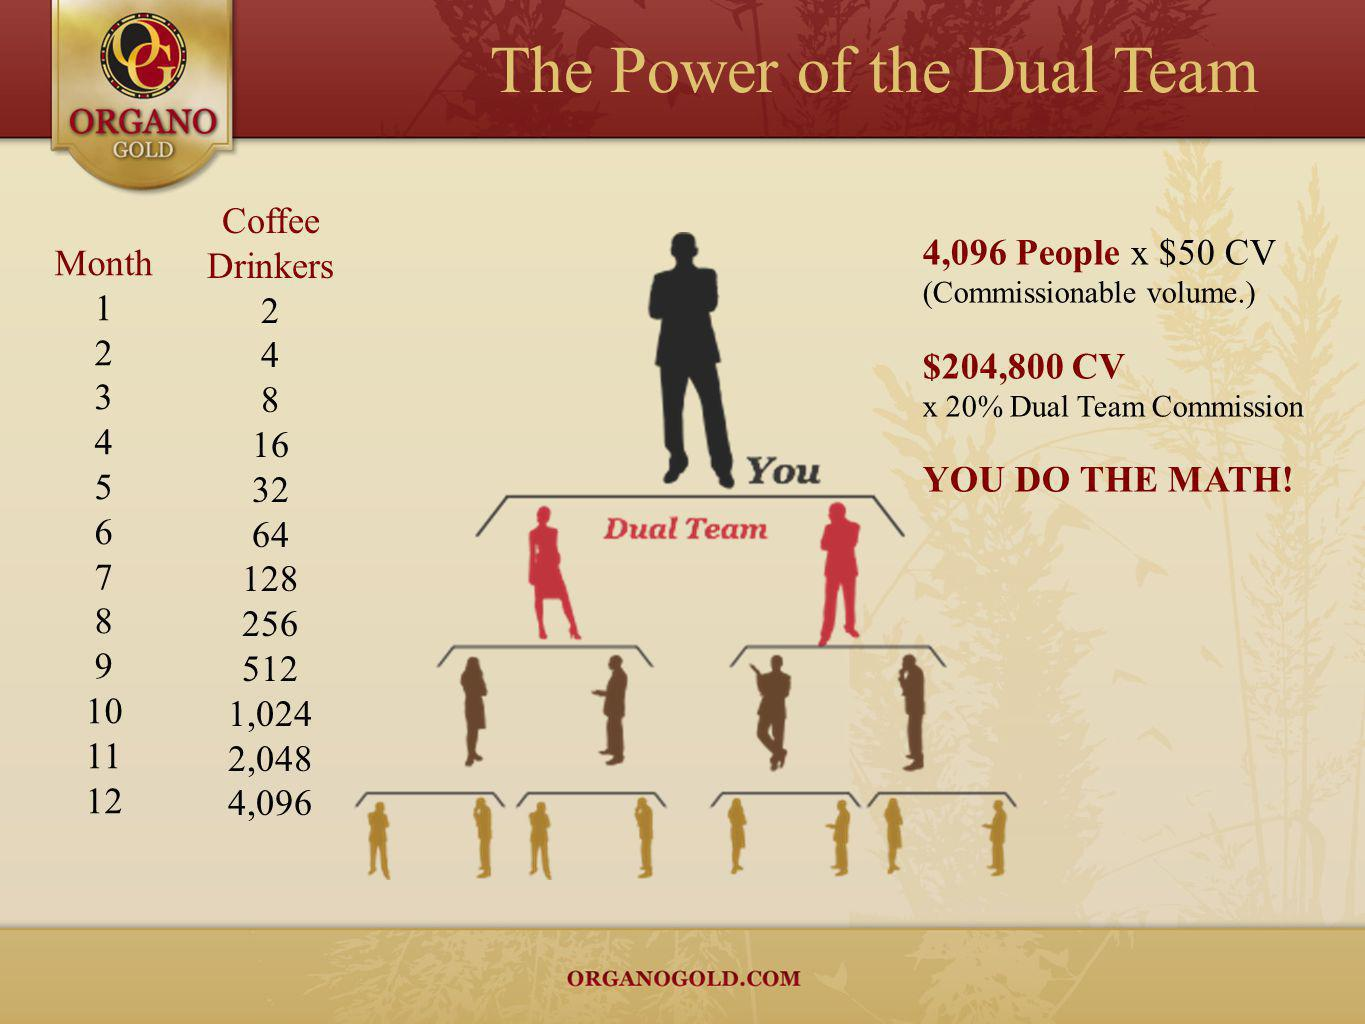 4,096 People x $50 CV (Commissionable volume.) $204,800 CV x 20% Dual Team Commission YOU DO THE MATH! Month 1 2 3 4 5 6 7 8 9 10 11 12 Coffee Drinker